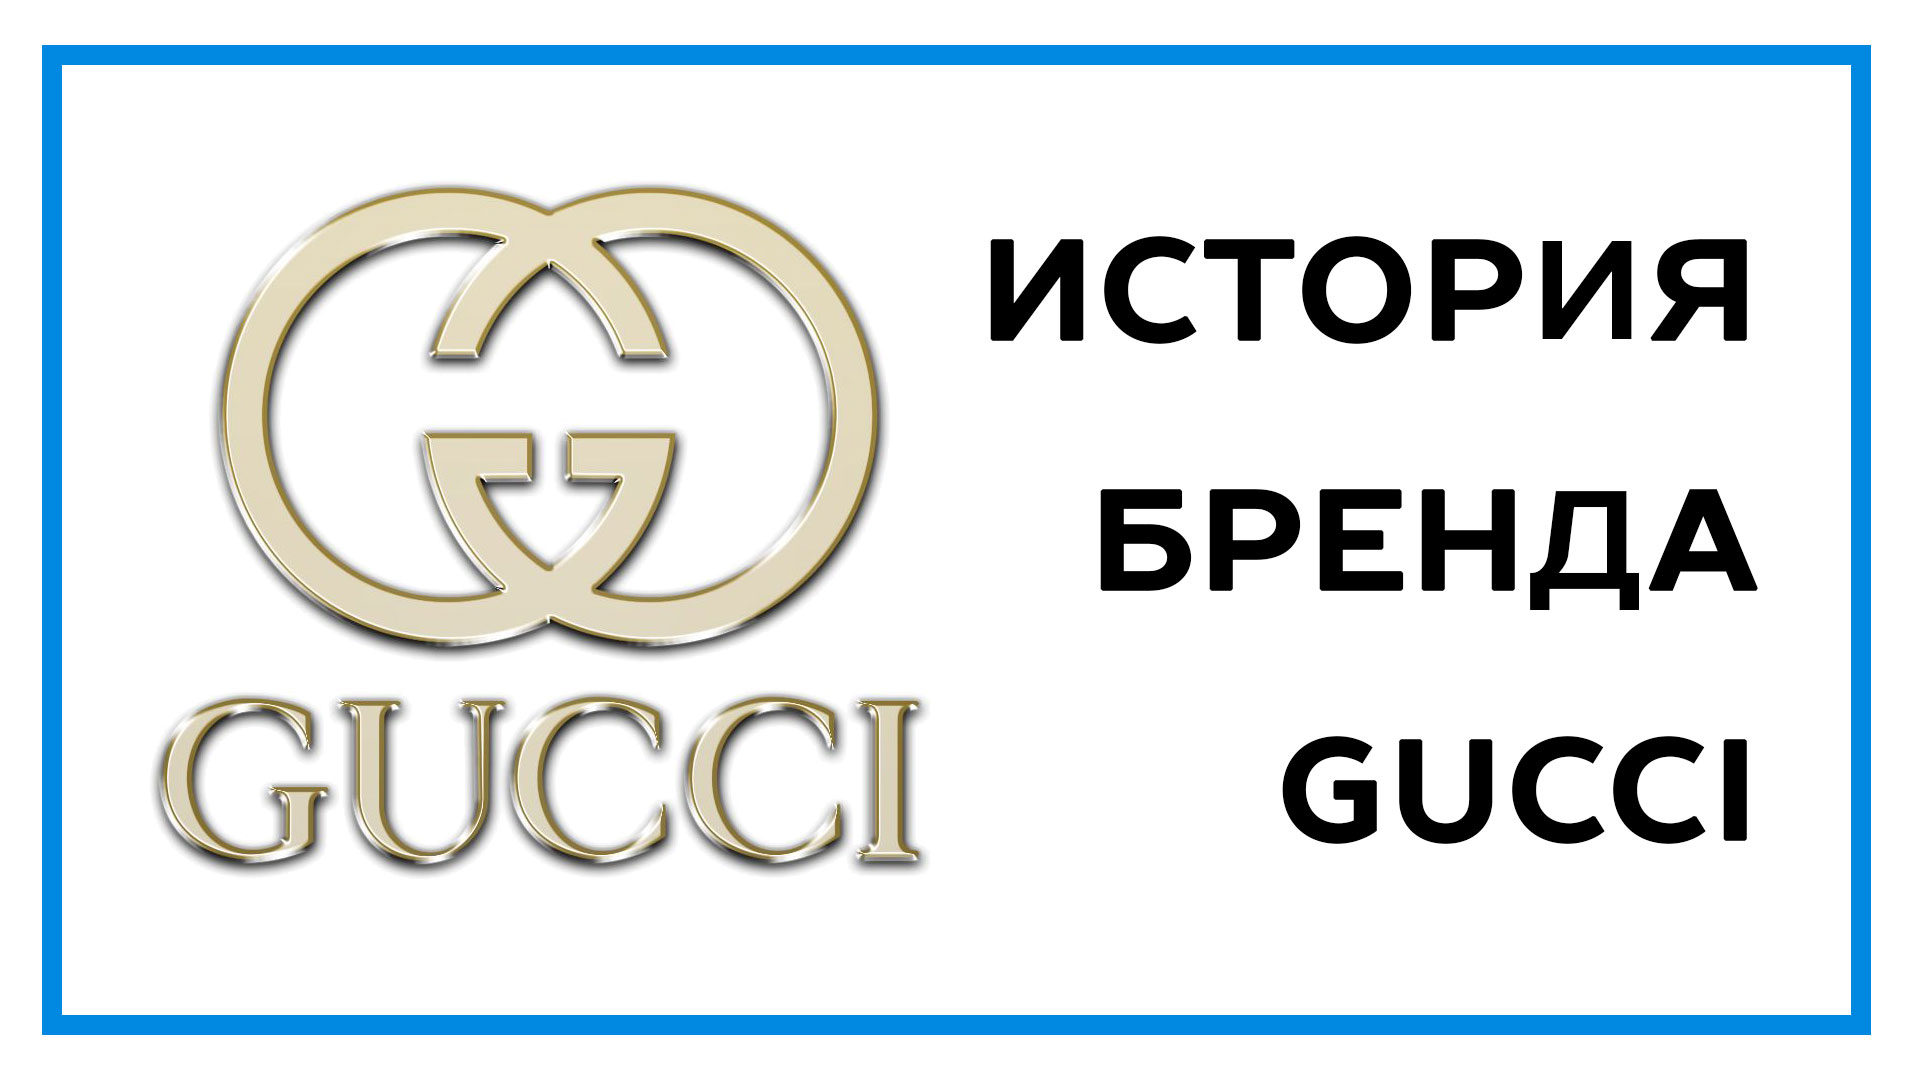 logotip-gucci.jpg